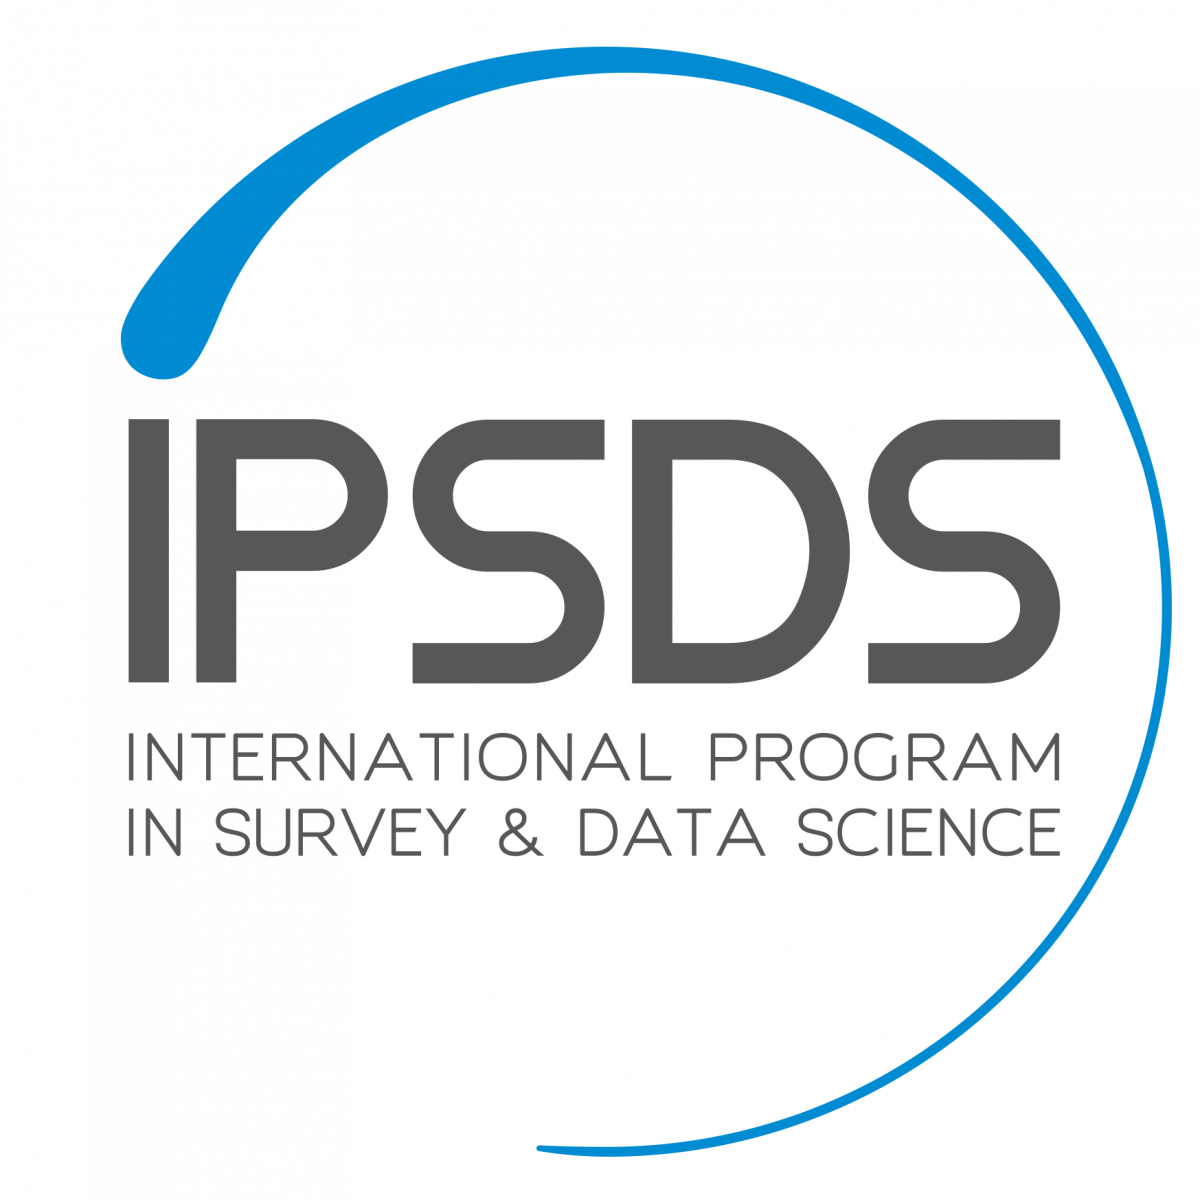 International Program in Survey and Data Science Logo